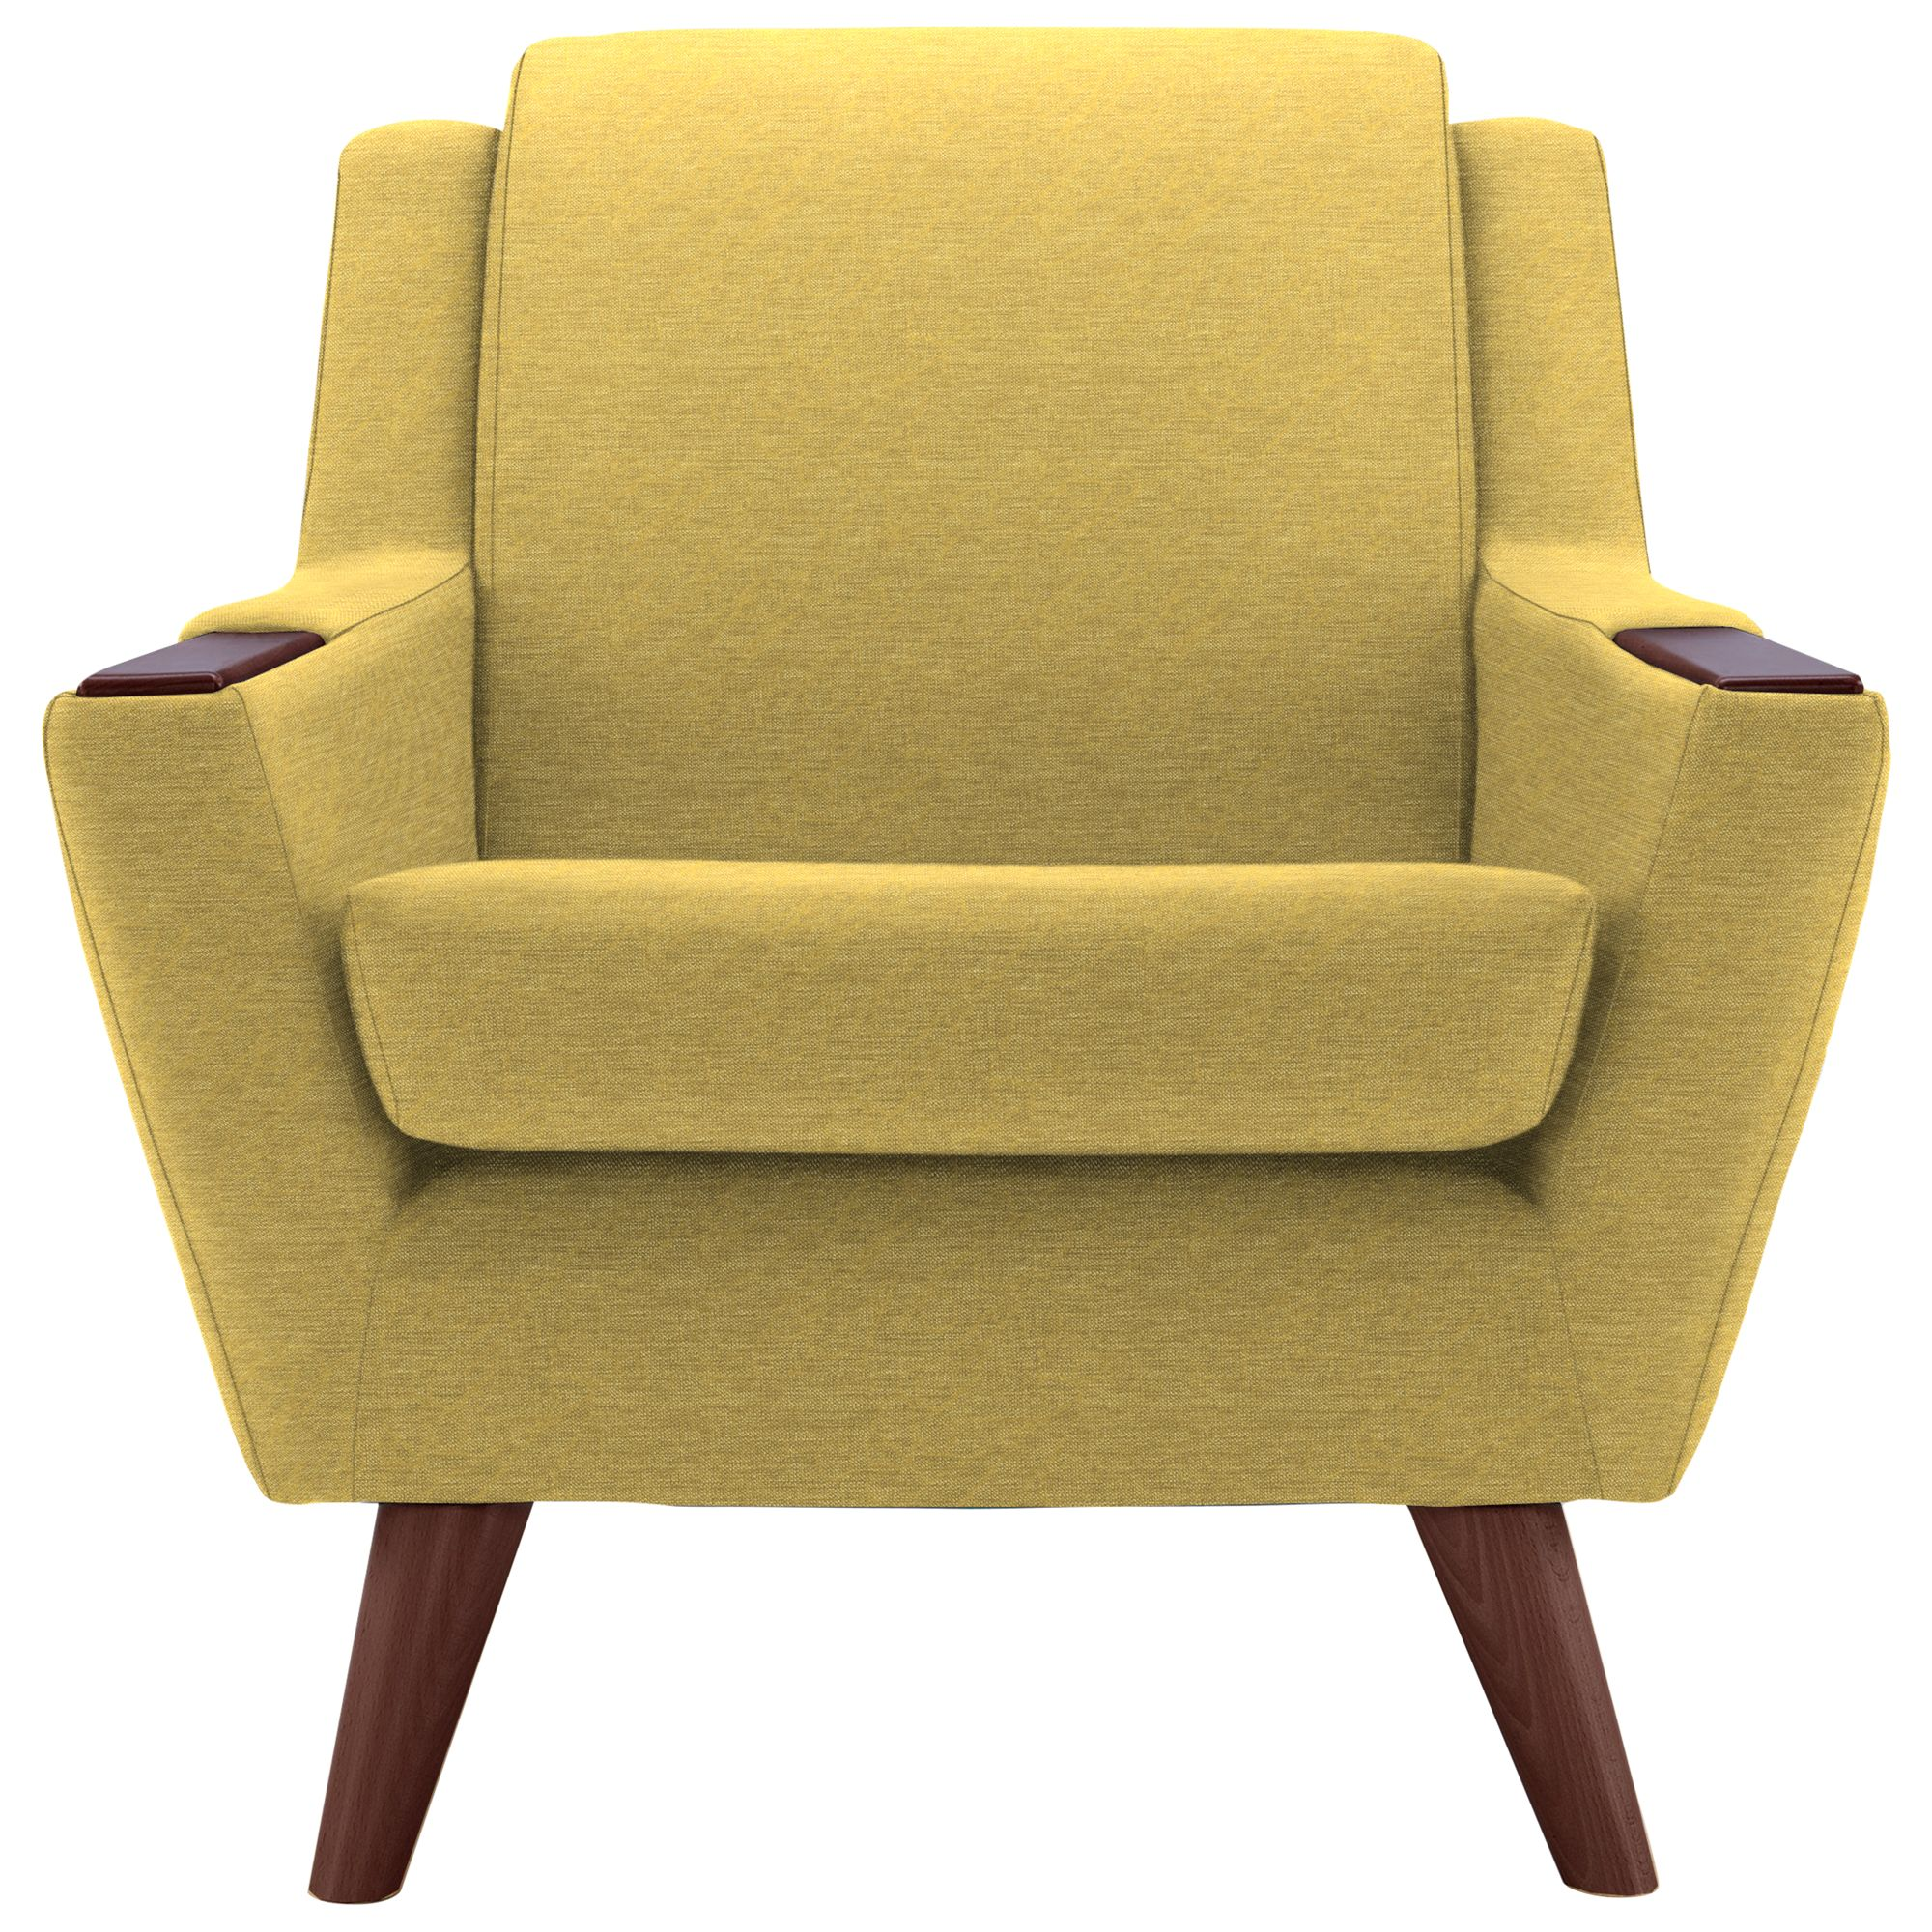 G Plan Vintage G Plan Vintage The Fifty Five Armchair, Tonic Mustard